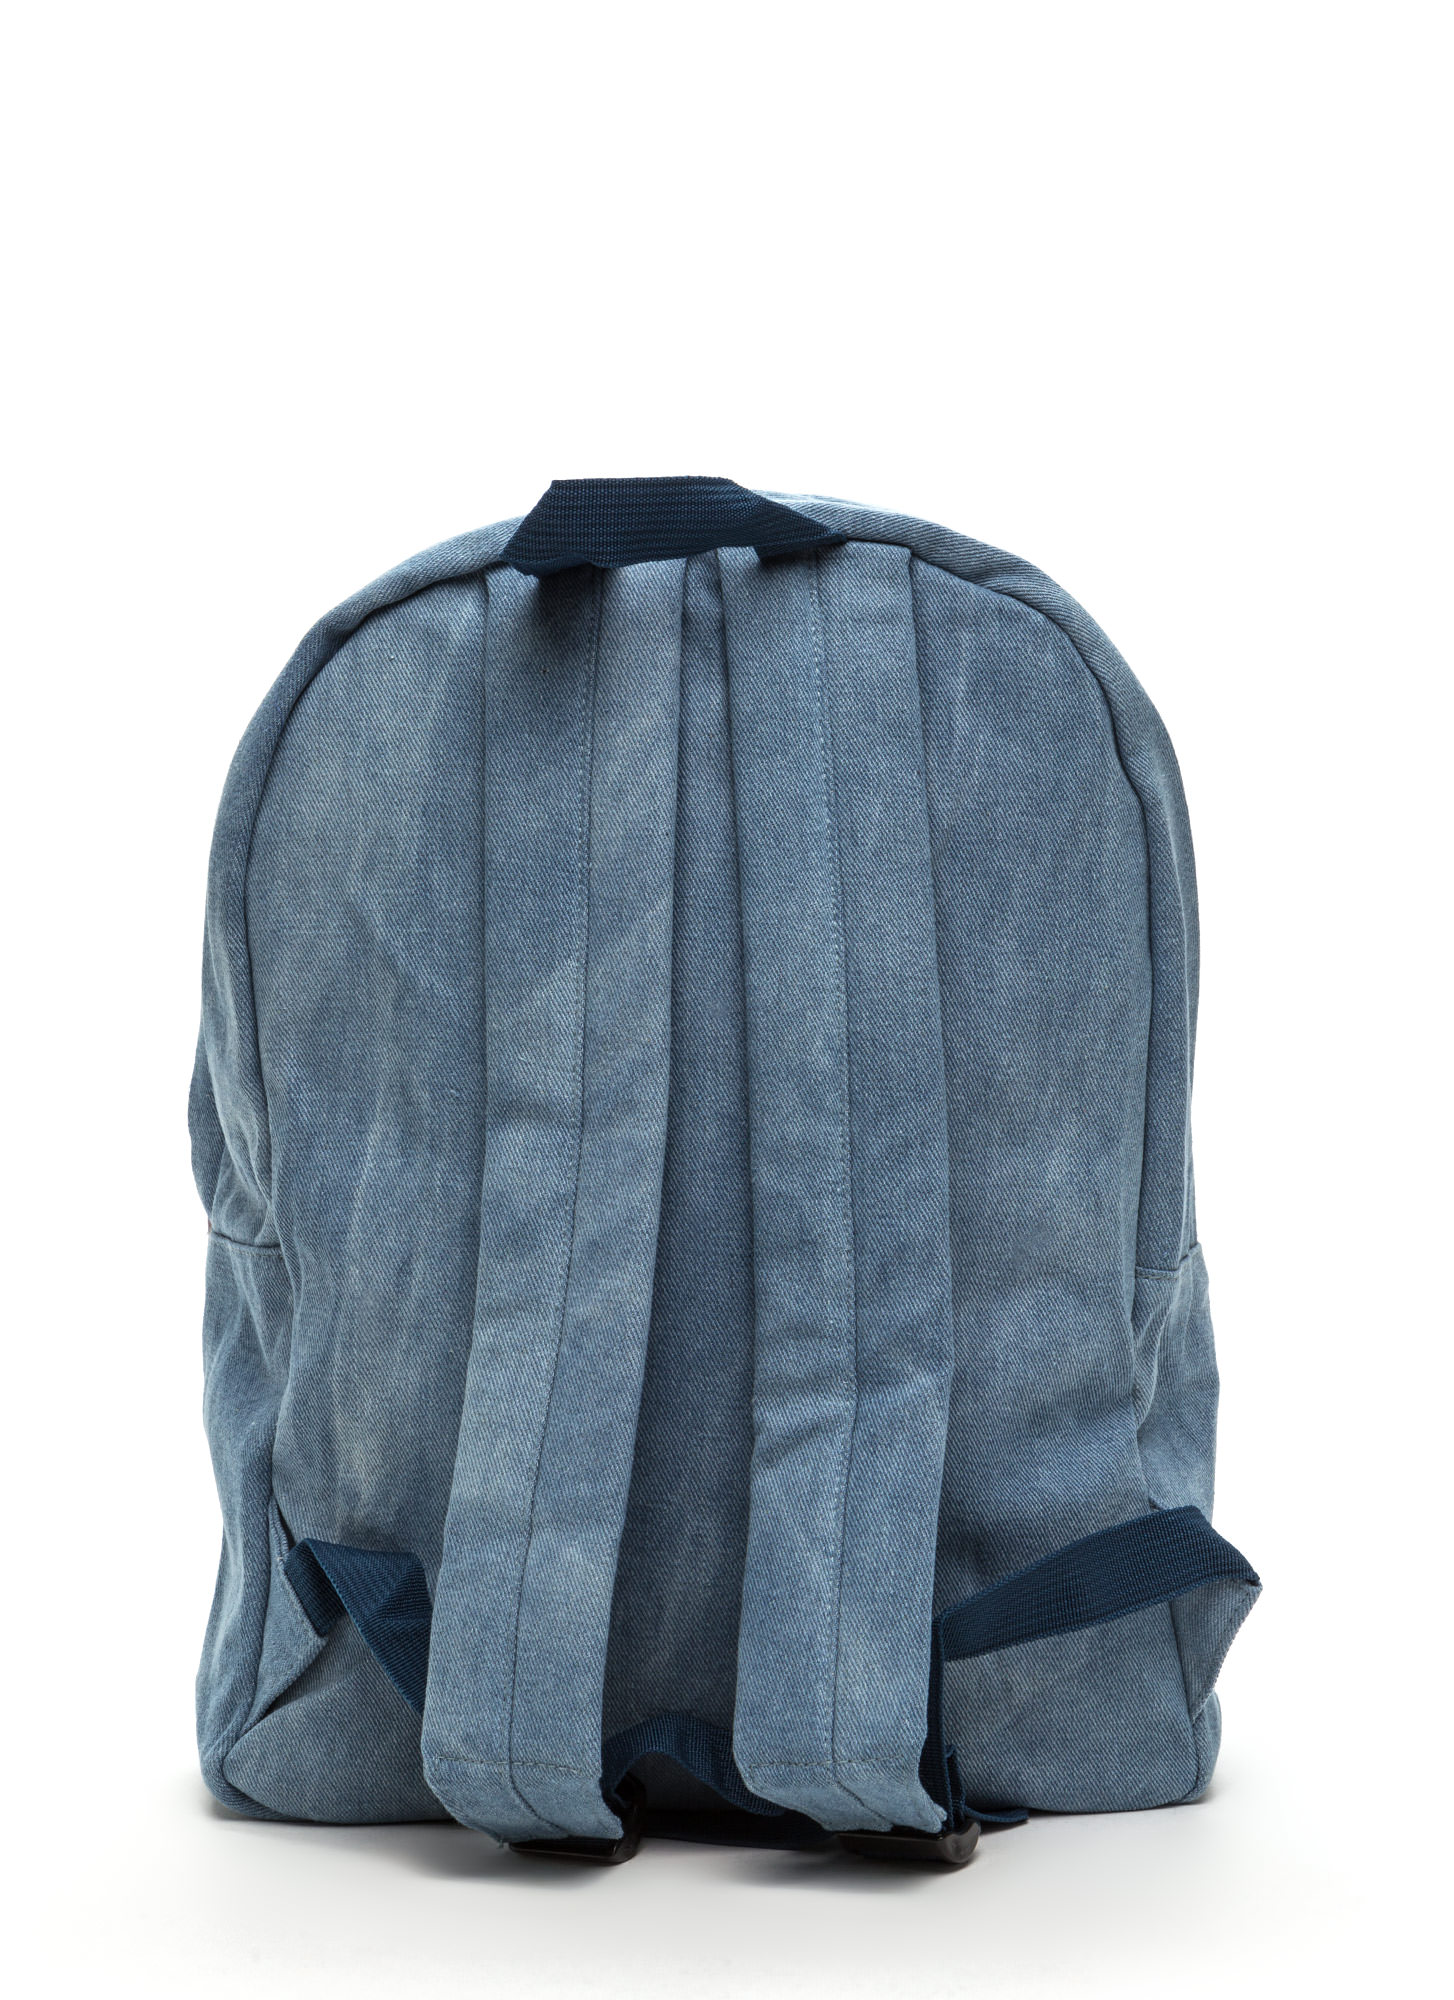 Mix 'N Patch Denim Backpack LTBLUE